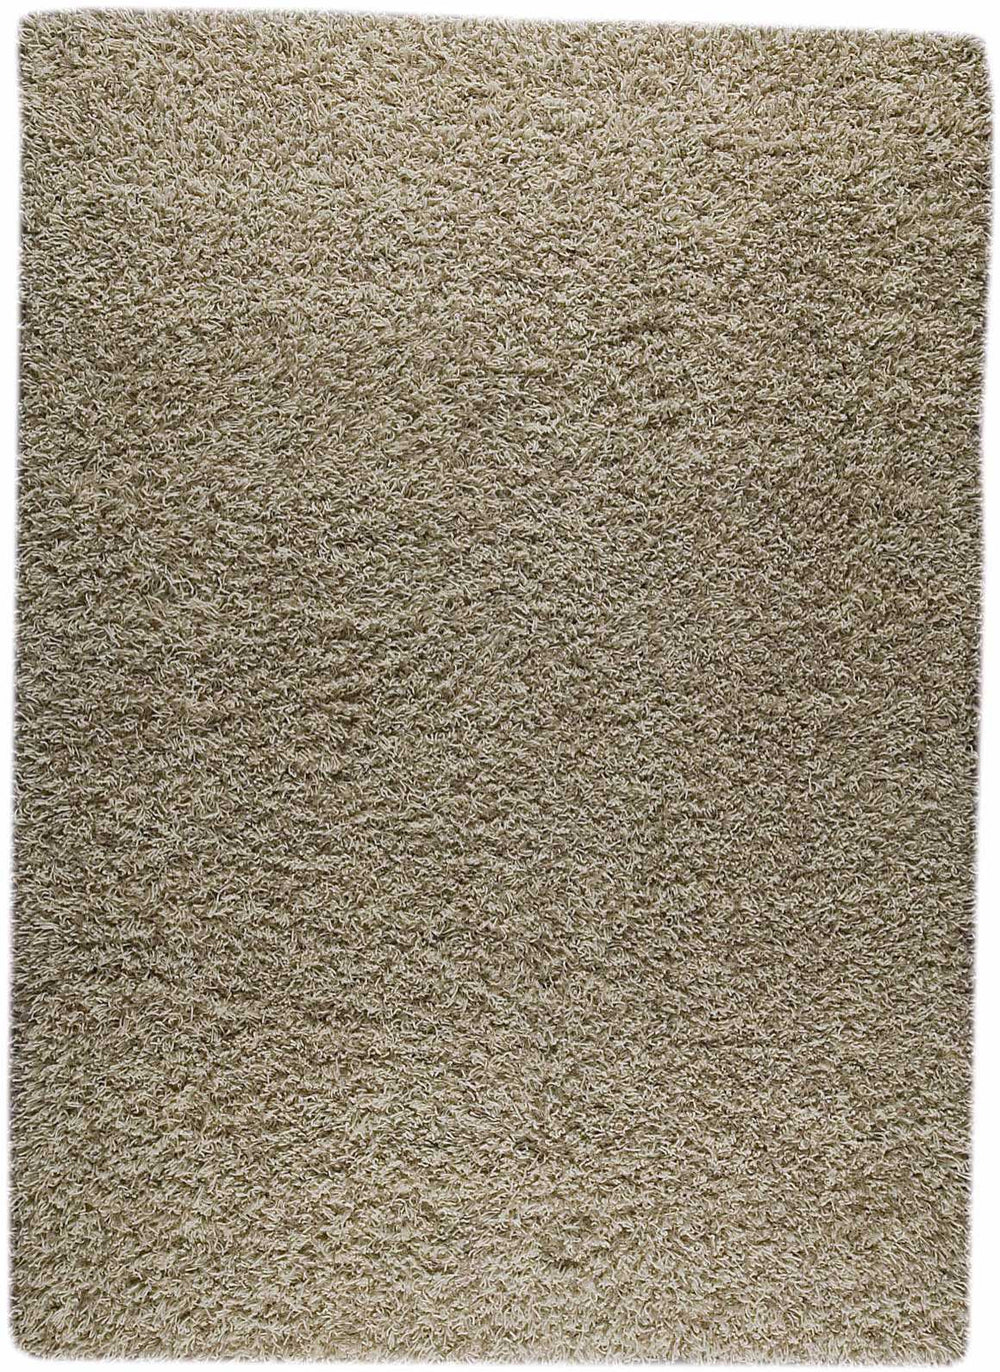 MAT The Basics 10W London Mix Area Rug